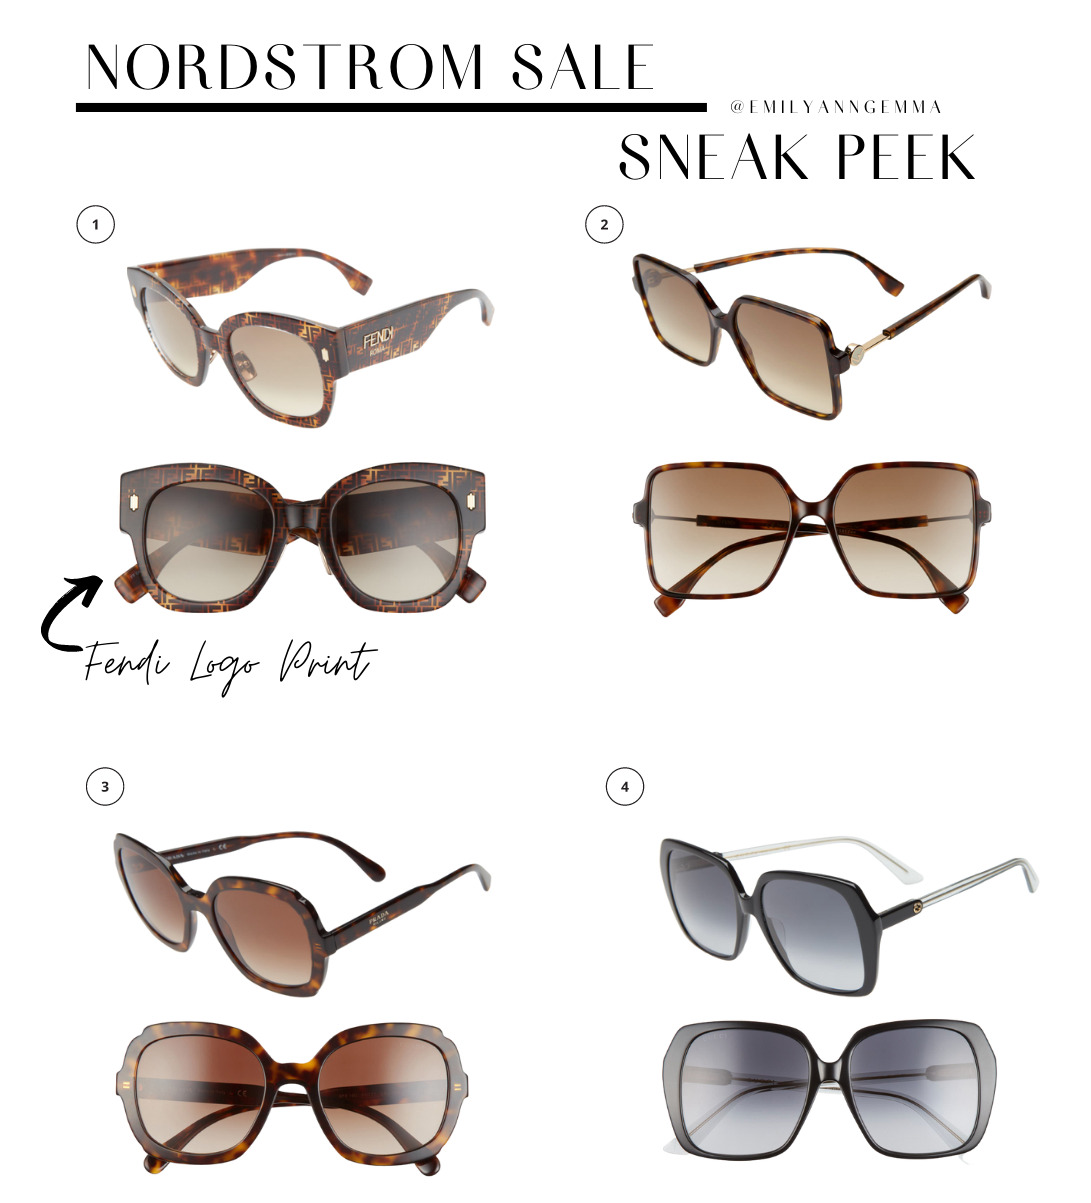 nsale 2021, nordstrom anniversary sale 2021, nSALE sunglasses, must have blog posts nordstrom sale 2020, Emily Ann Gemma, the sweetest thing blog | Nordstrom Anniversary Sale by popular US fashion blog, The Sweetest Thing: image of Nordstrom Sale items. | Nordstrom Anniversary Sale by popular US fashion blog, The Sweetest Thing: collage image of Fendi logo print sunglasses, tortoise shell sunglasses, and square black frame sunglasses.